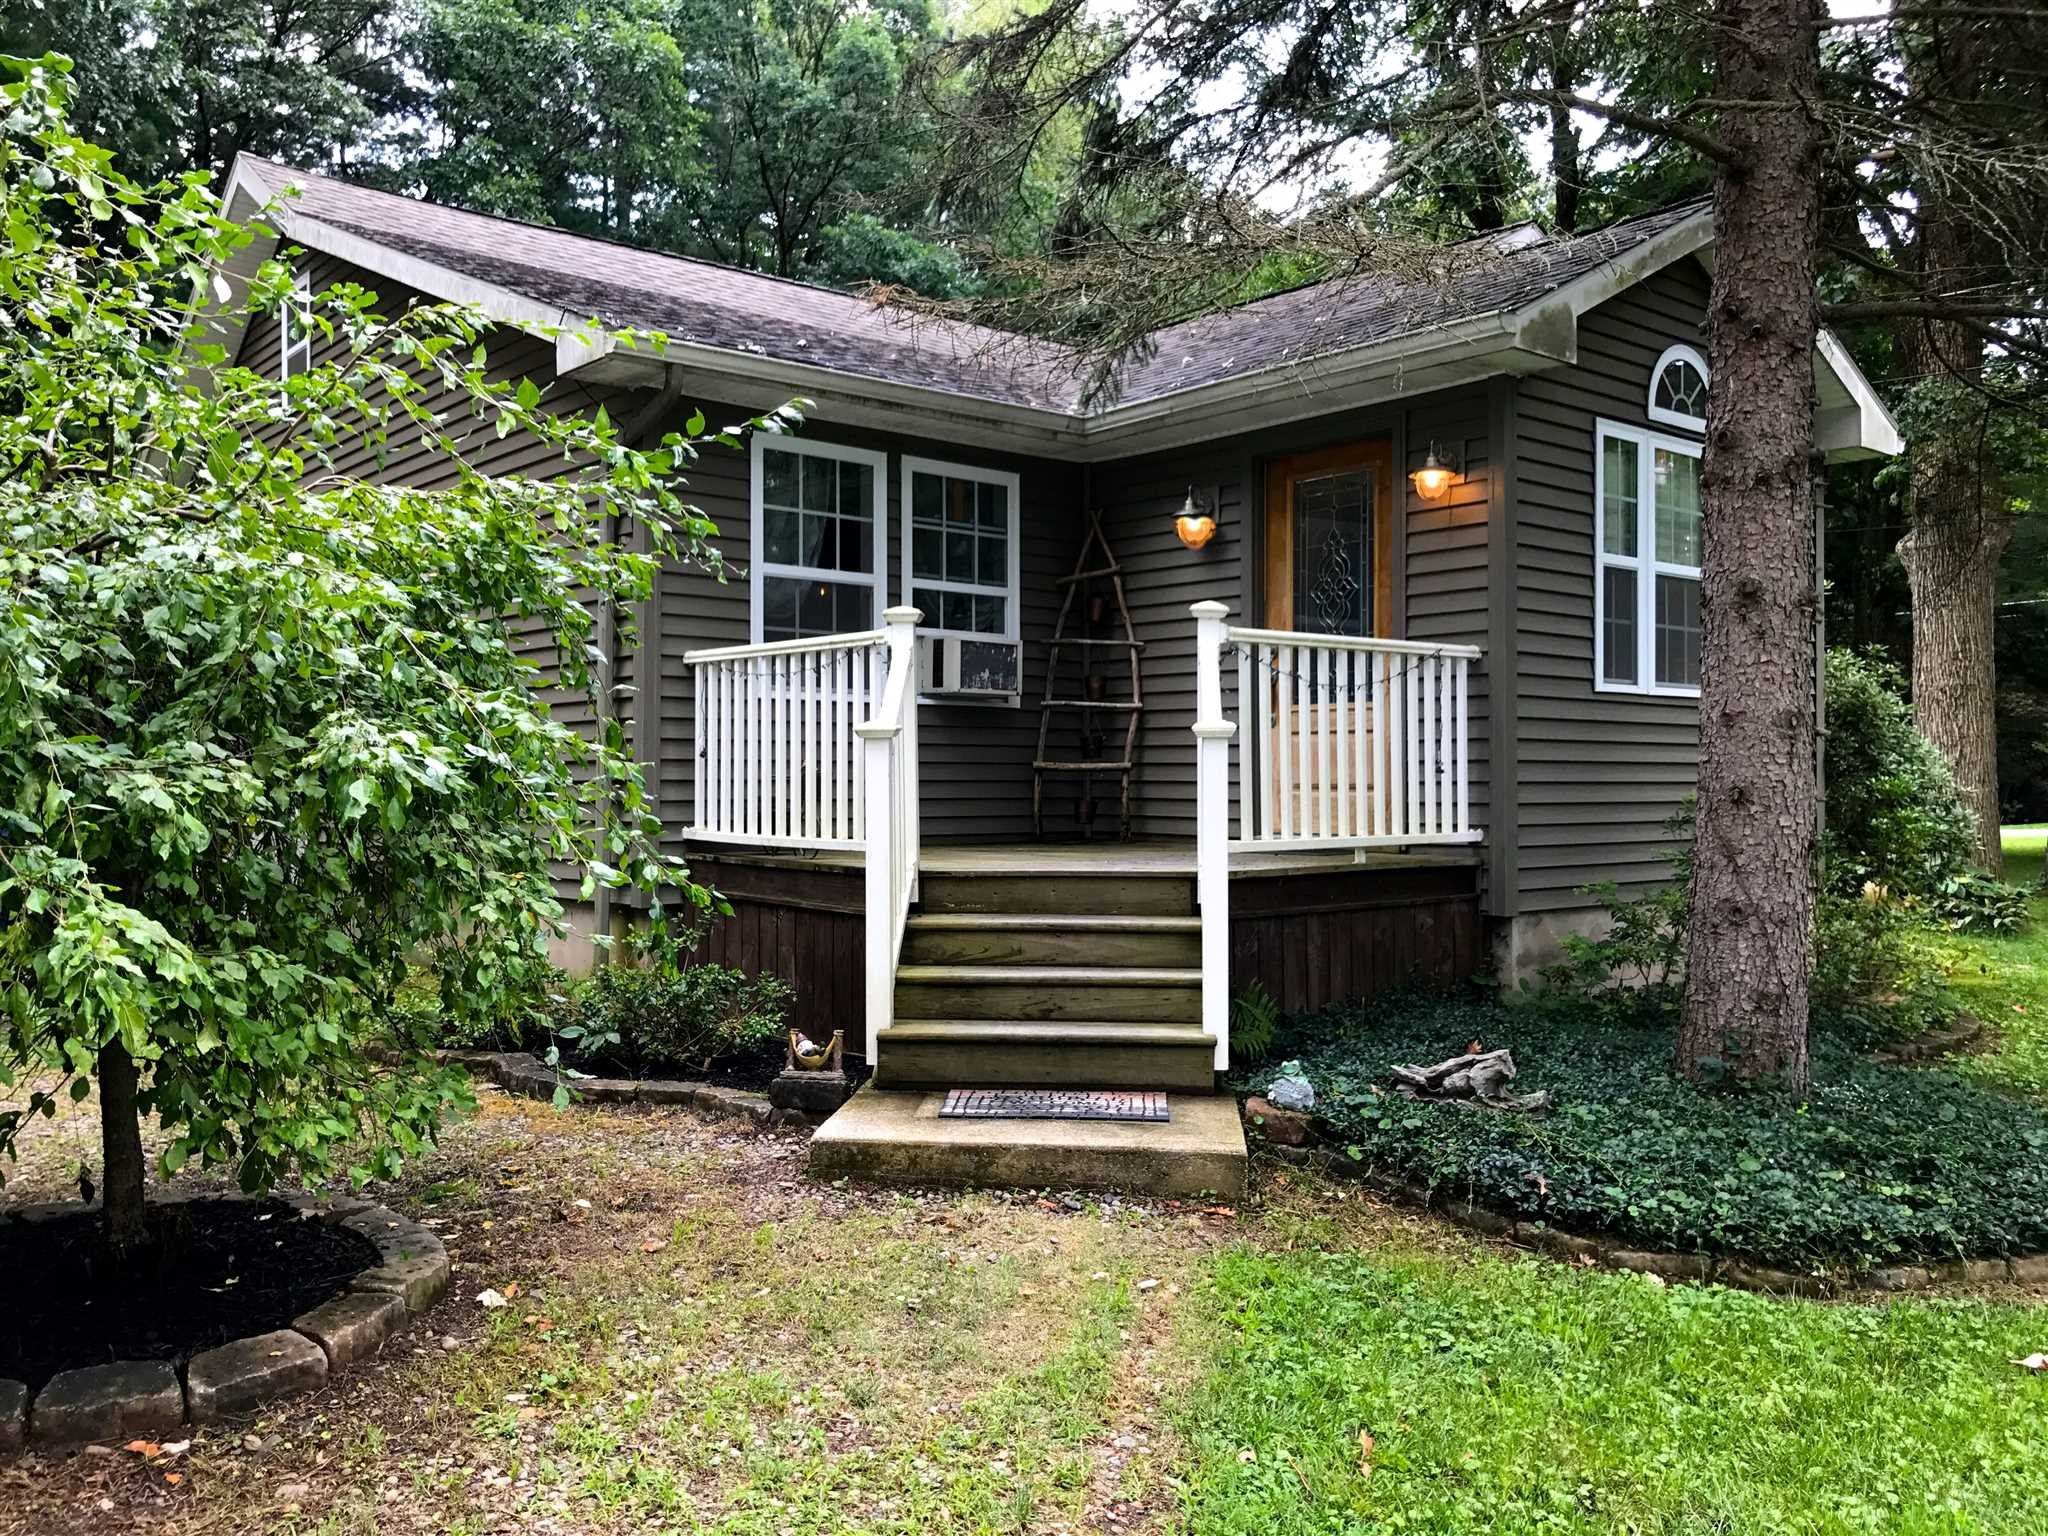 Single Family Home for Sale at 34 COTTONWOOD ROAD 34 COTTONWOOD ROAD Livingston, New York 12523 United States